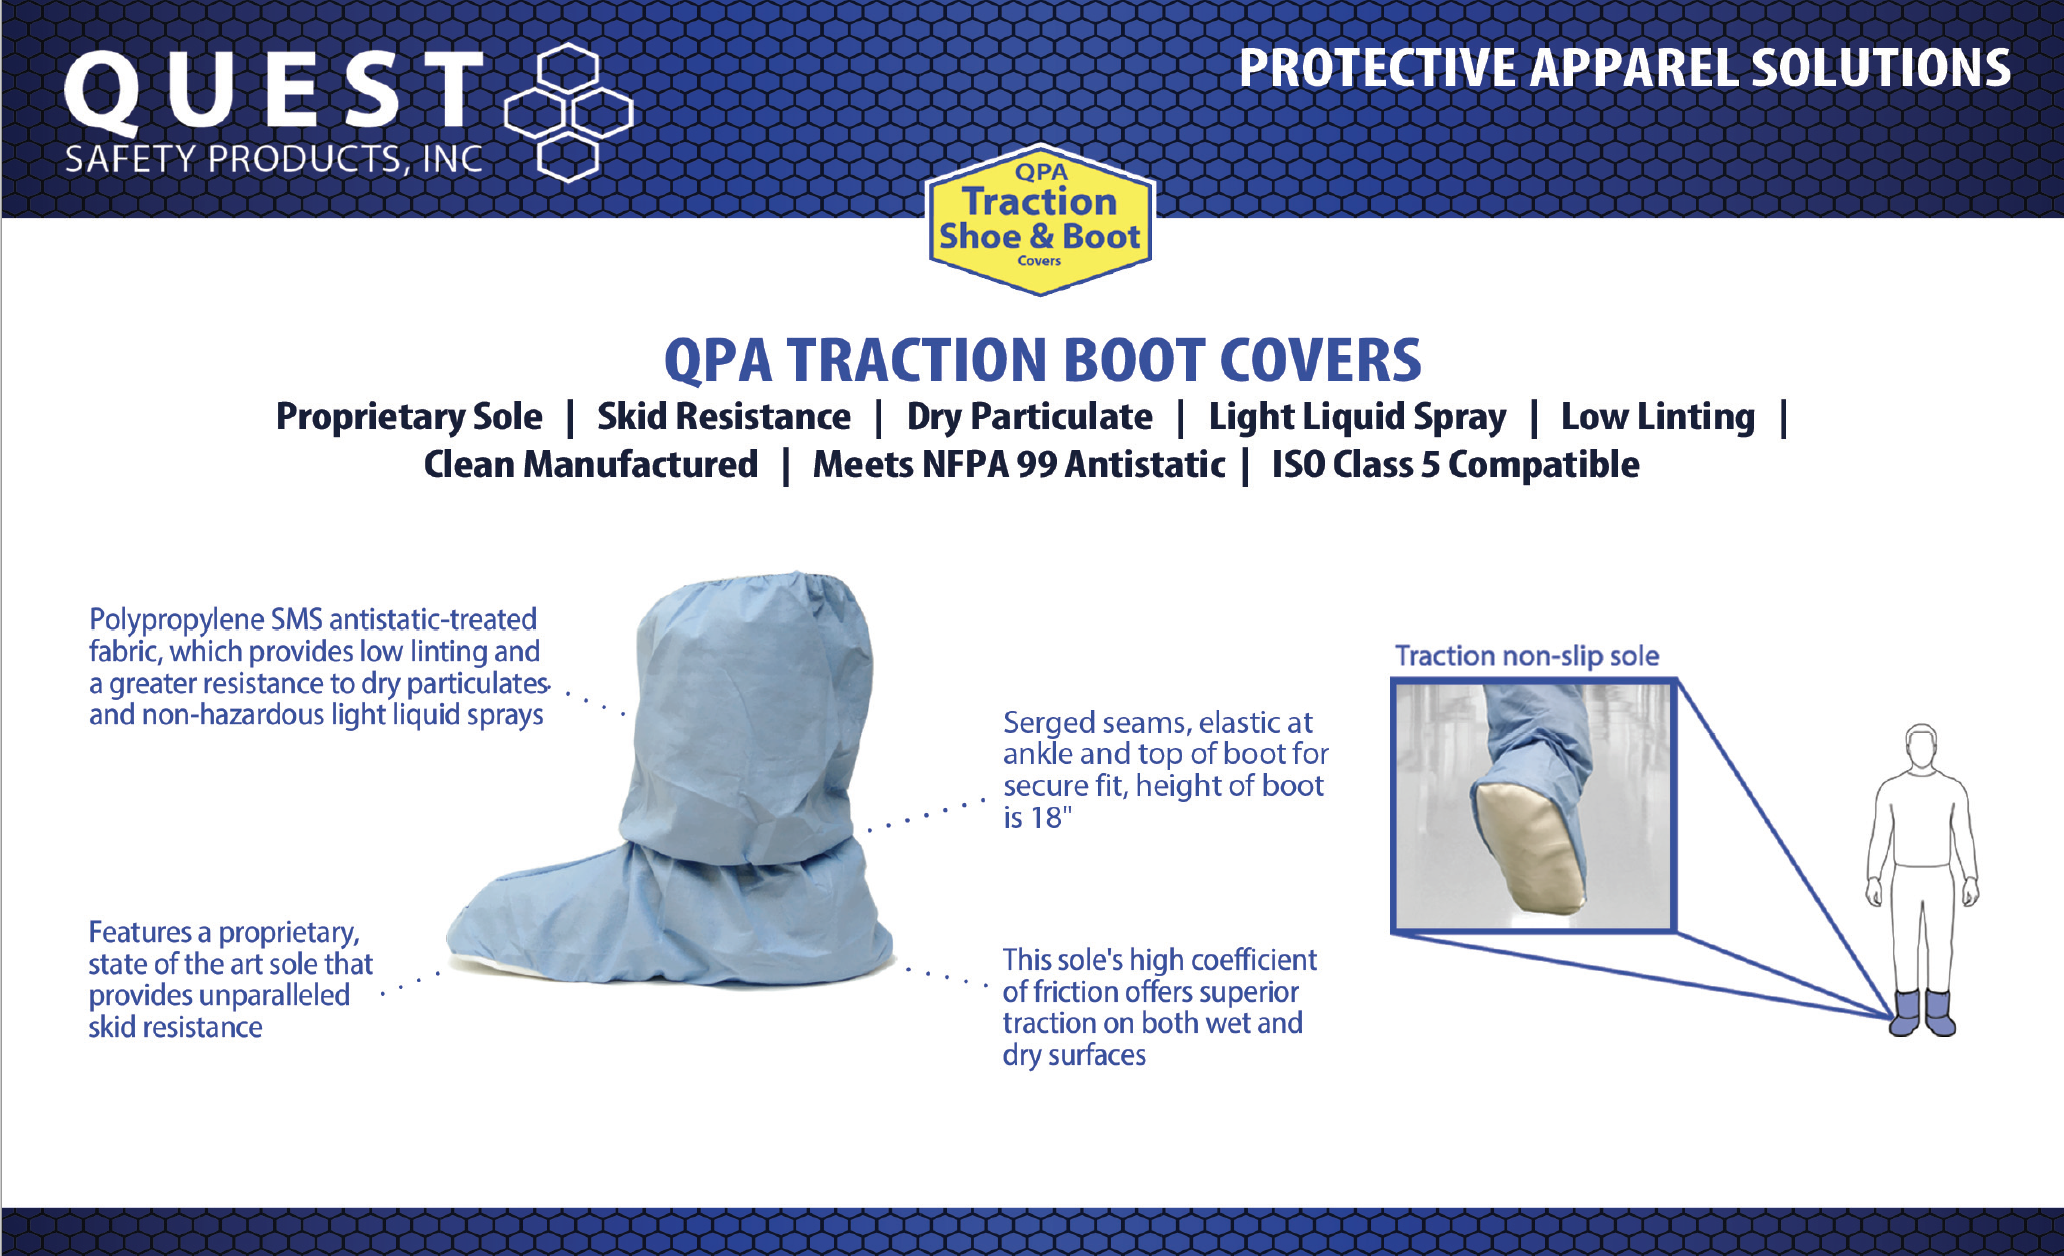 Quest Safety Products Boot Covers